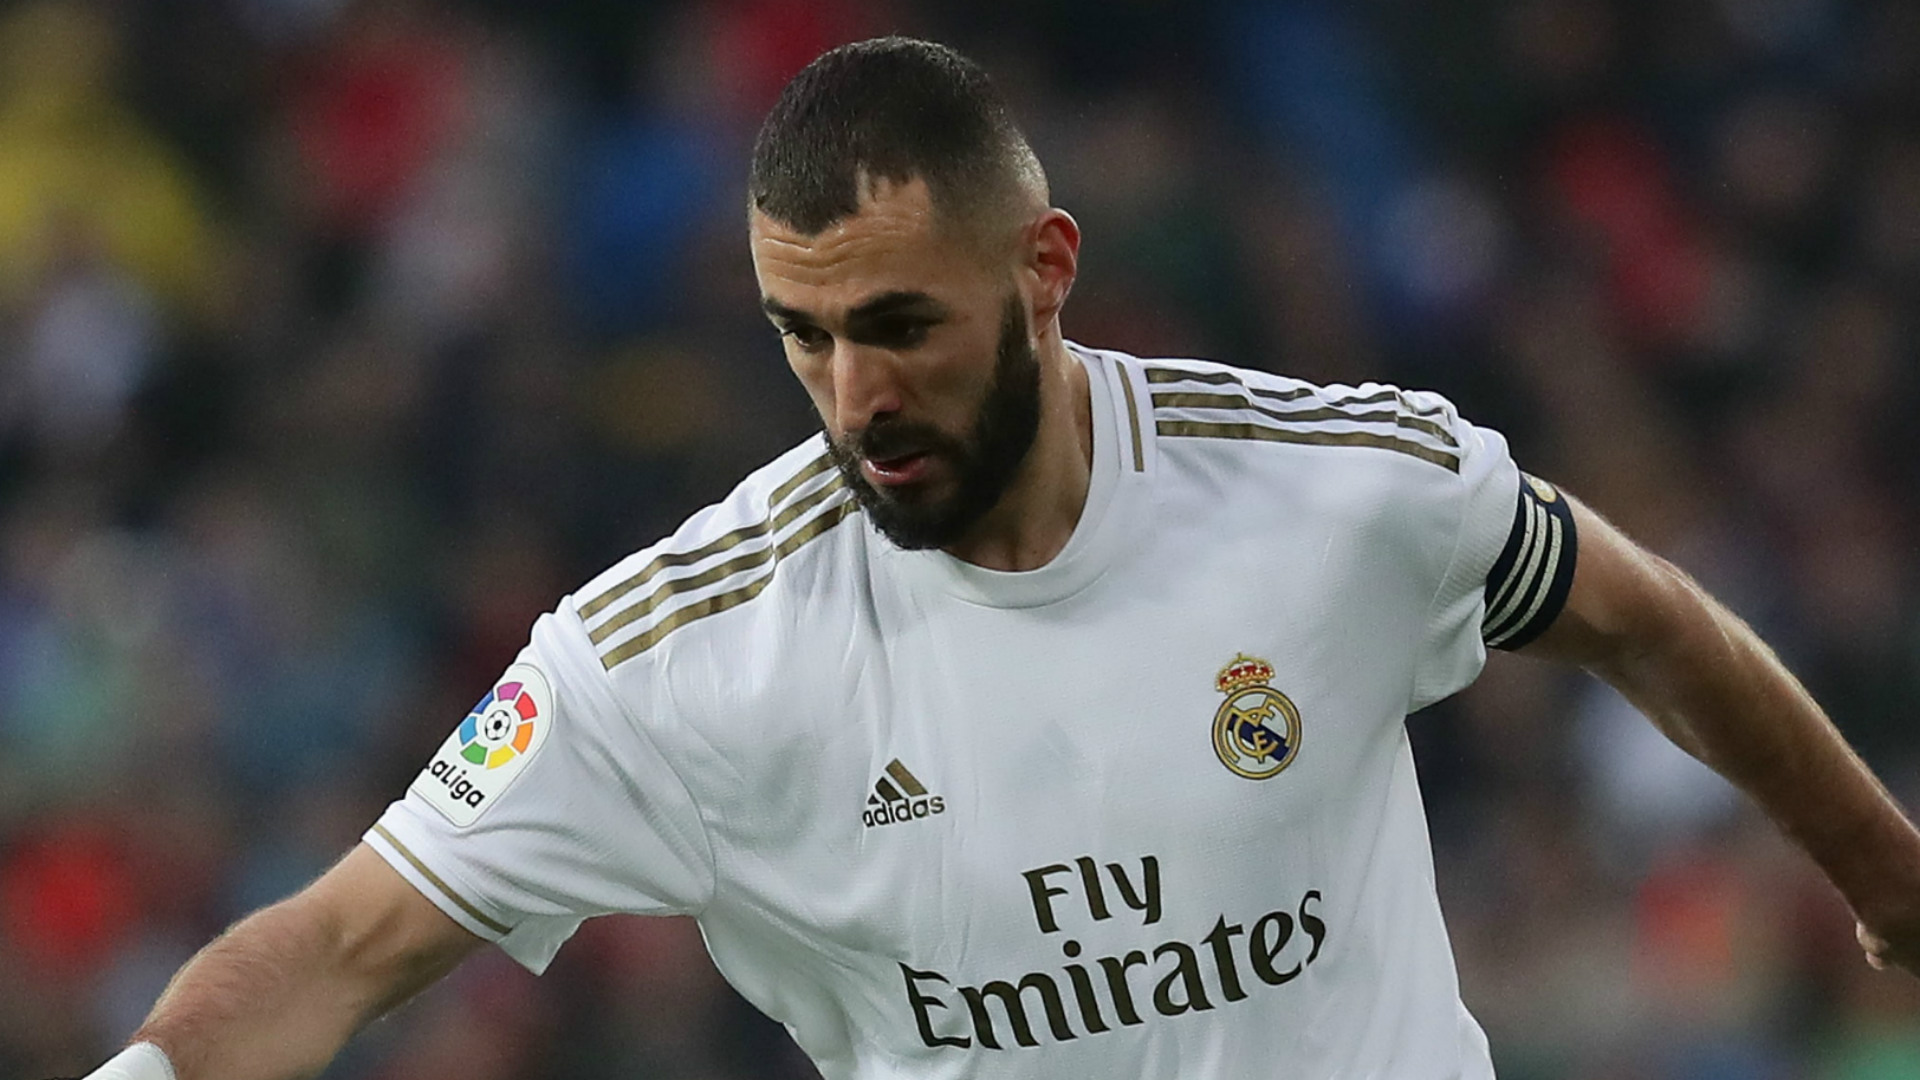 Zaragoza v real madrid betting preview 2021 week 16 nfl betting lines